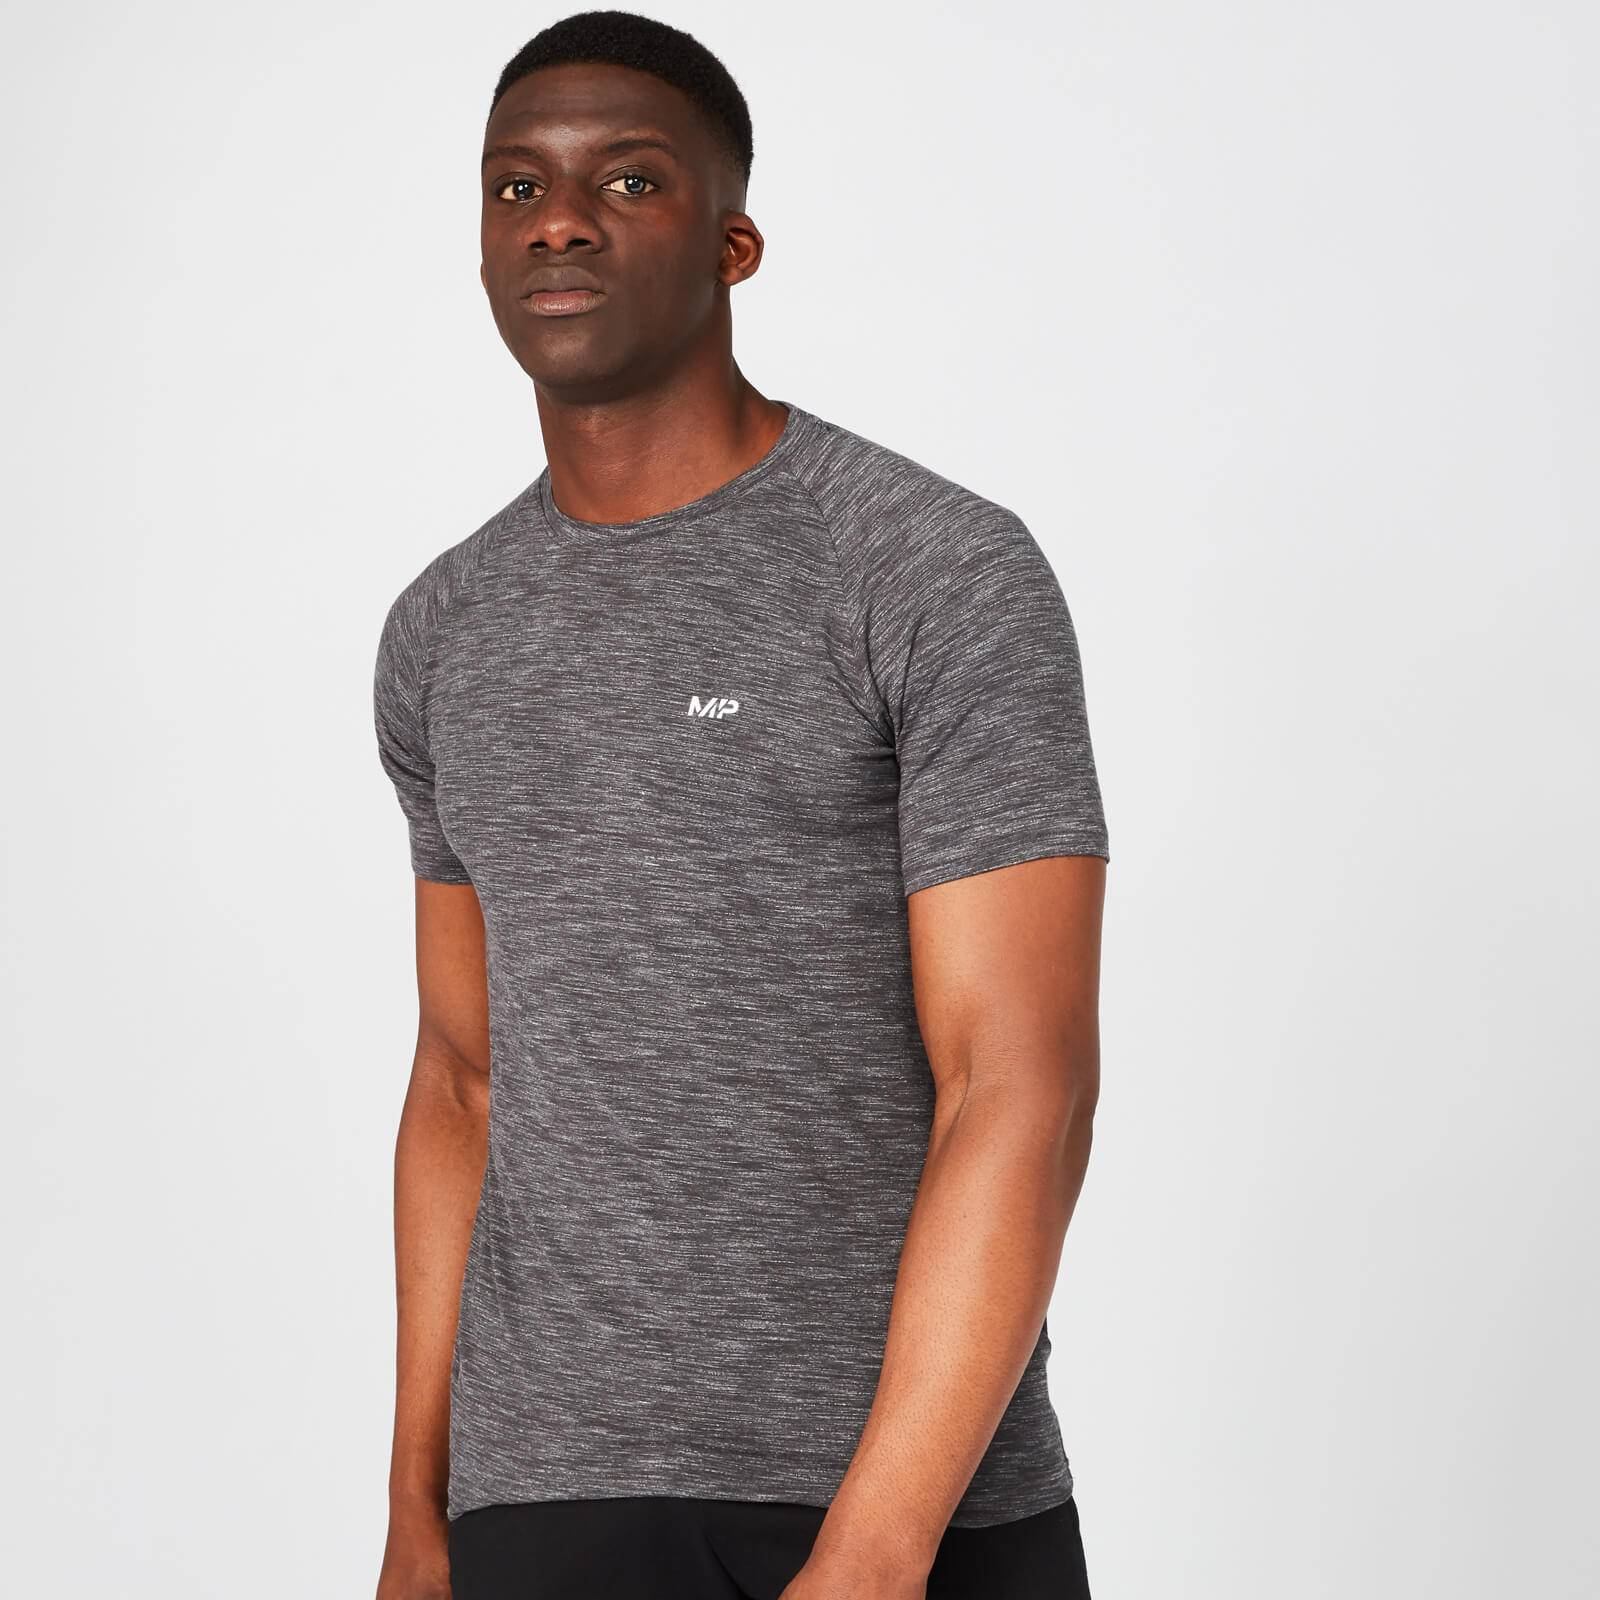 Myprotein Performance T-Shirt - Charcoal Marl - XL